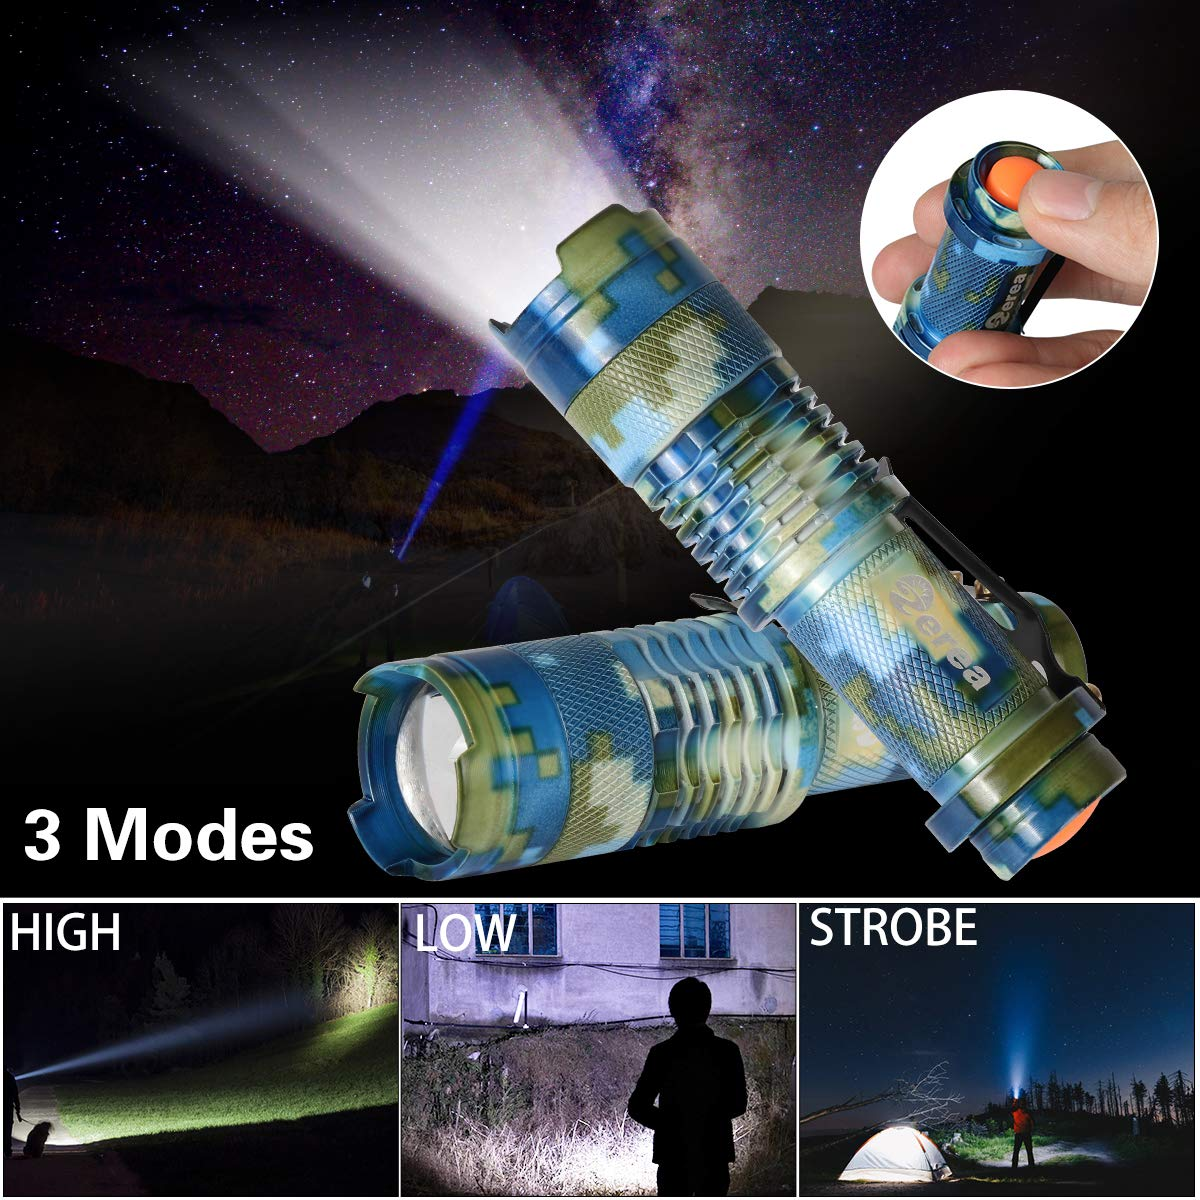 5 Pack Ultra-Bright LED Tactical Mini Flashlights 5 Camo Outdoor and Camping High Lumens Zoomable LED Handheld Flashlights with 3 Lighting Modes ZEREA Hiking Best for Emergency